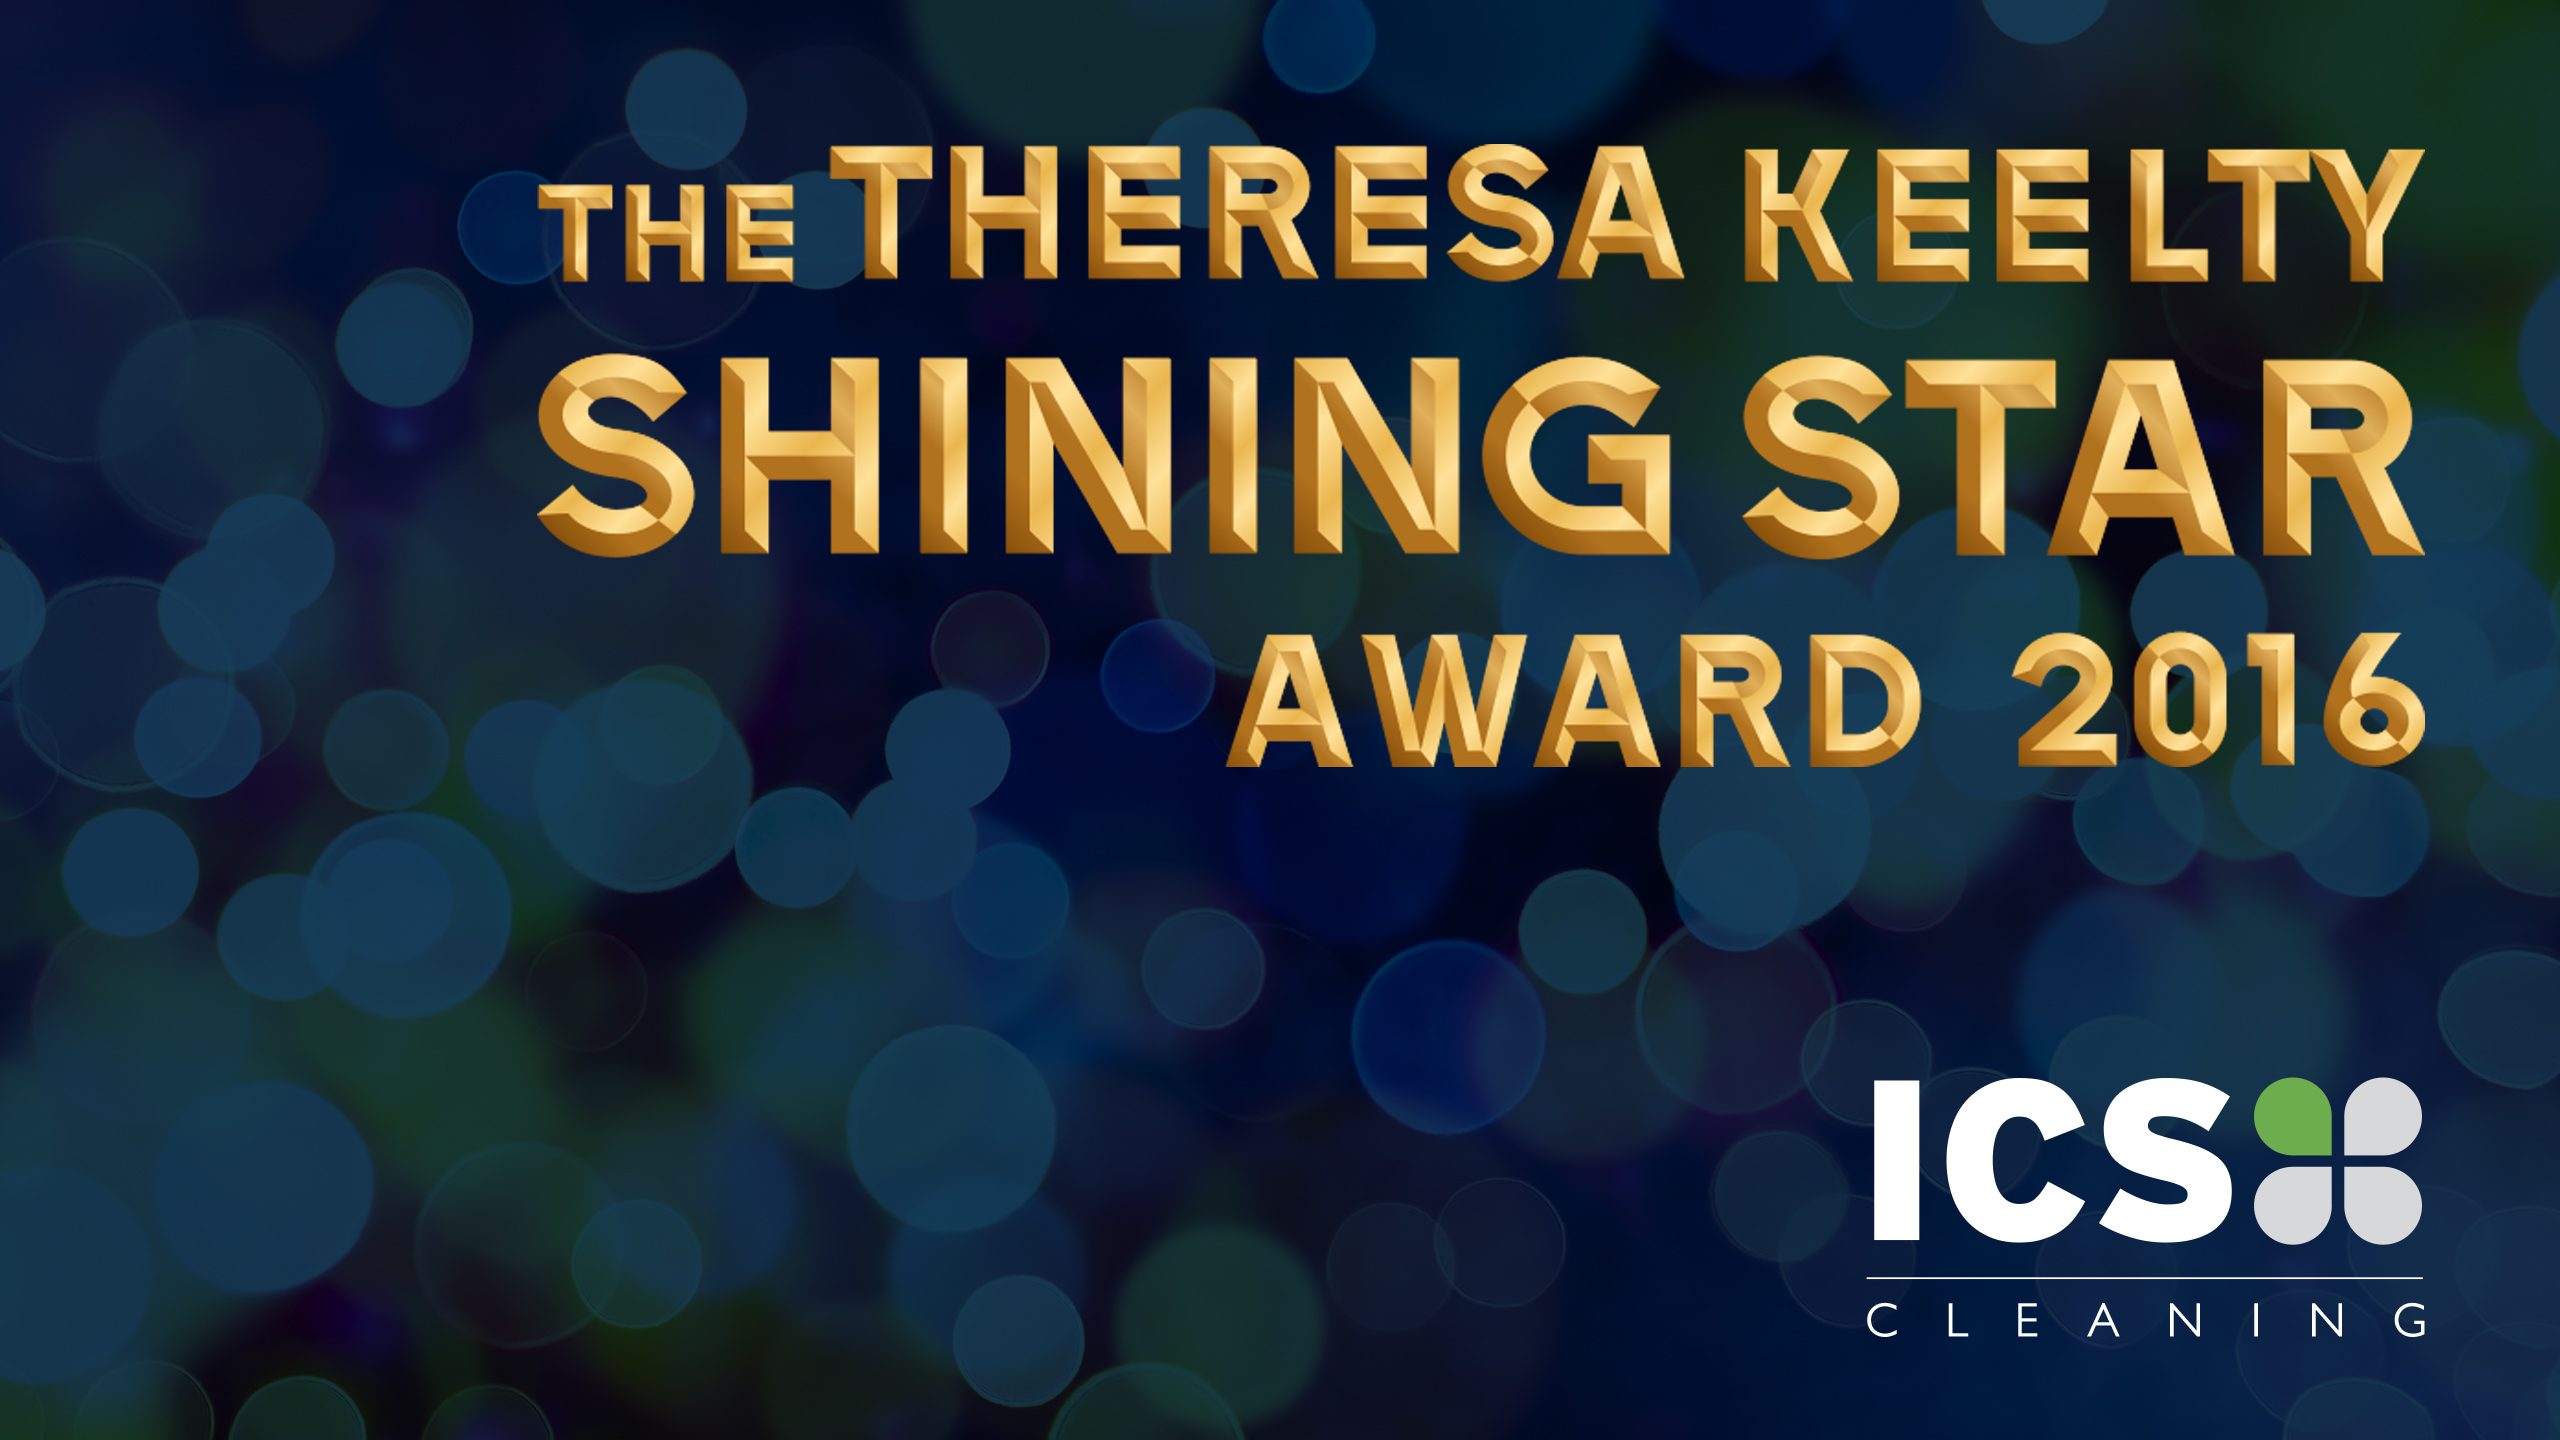 The Theresa Keelty Shining Star Award 2016